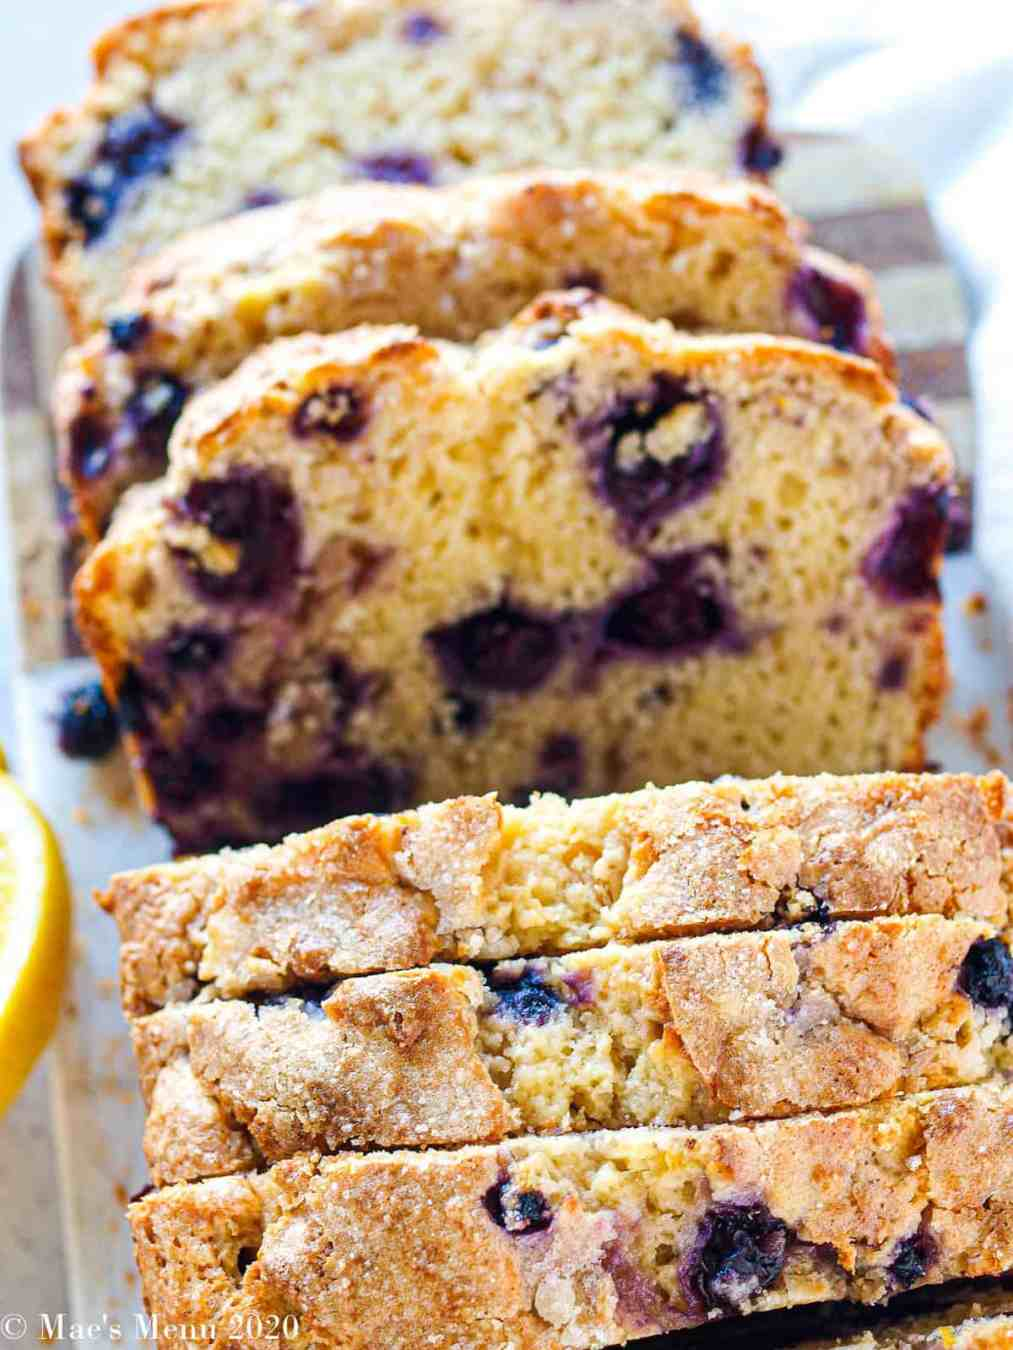 A overhead handled shot of slices of blueberry muffin bread laying on their sides.